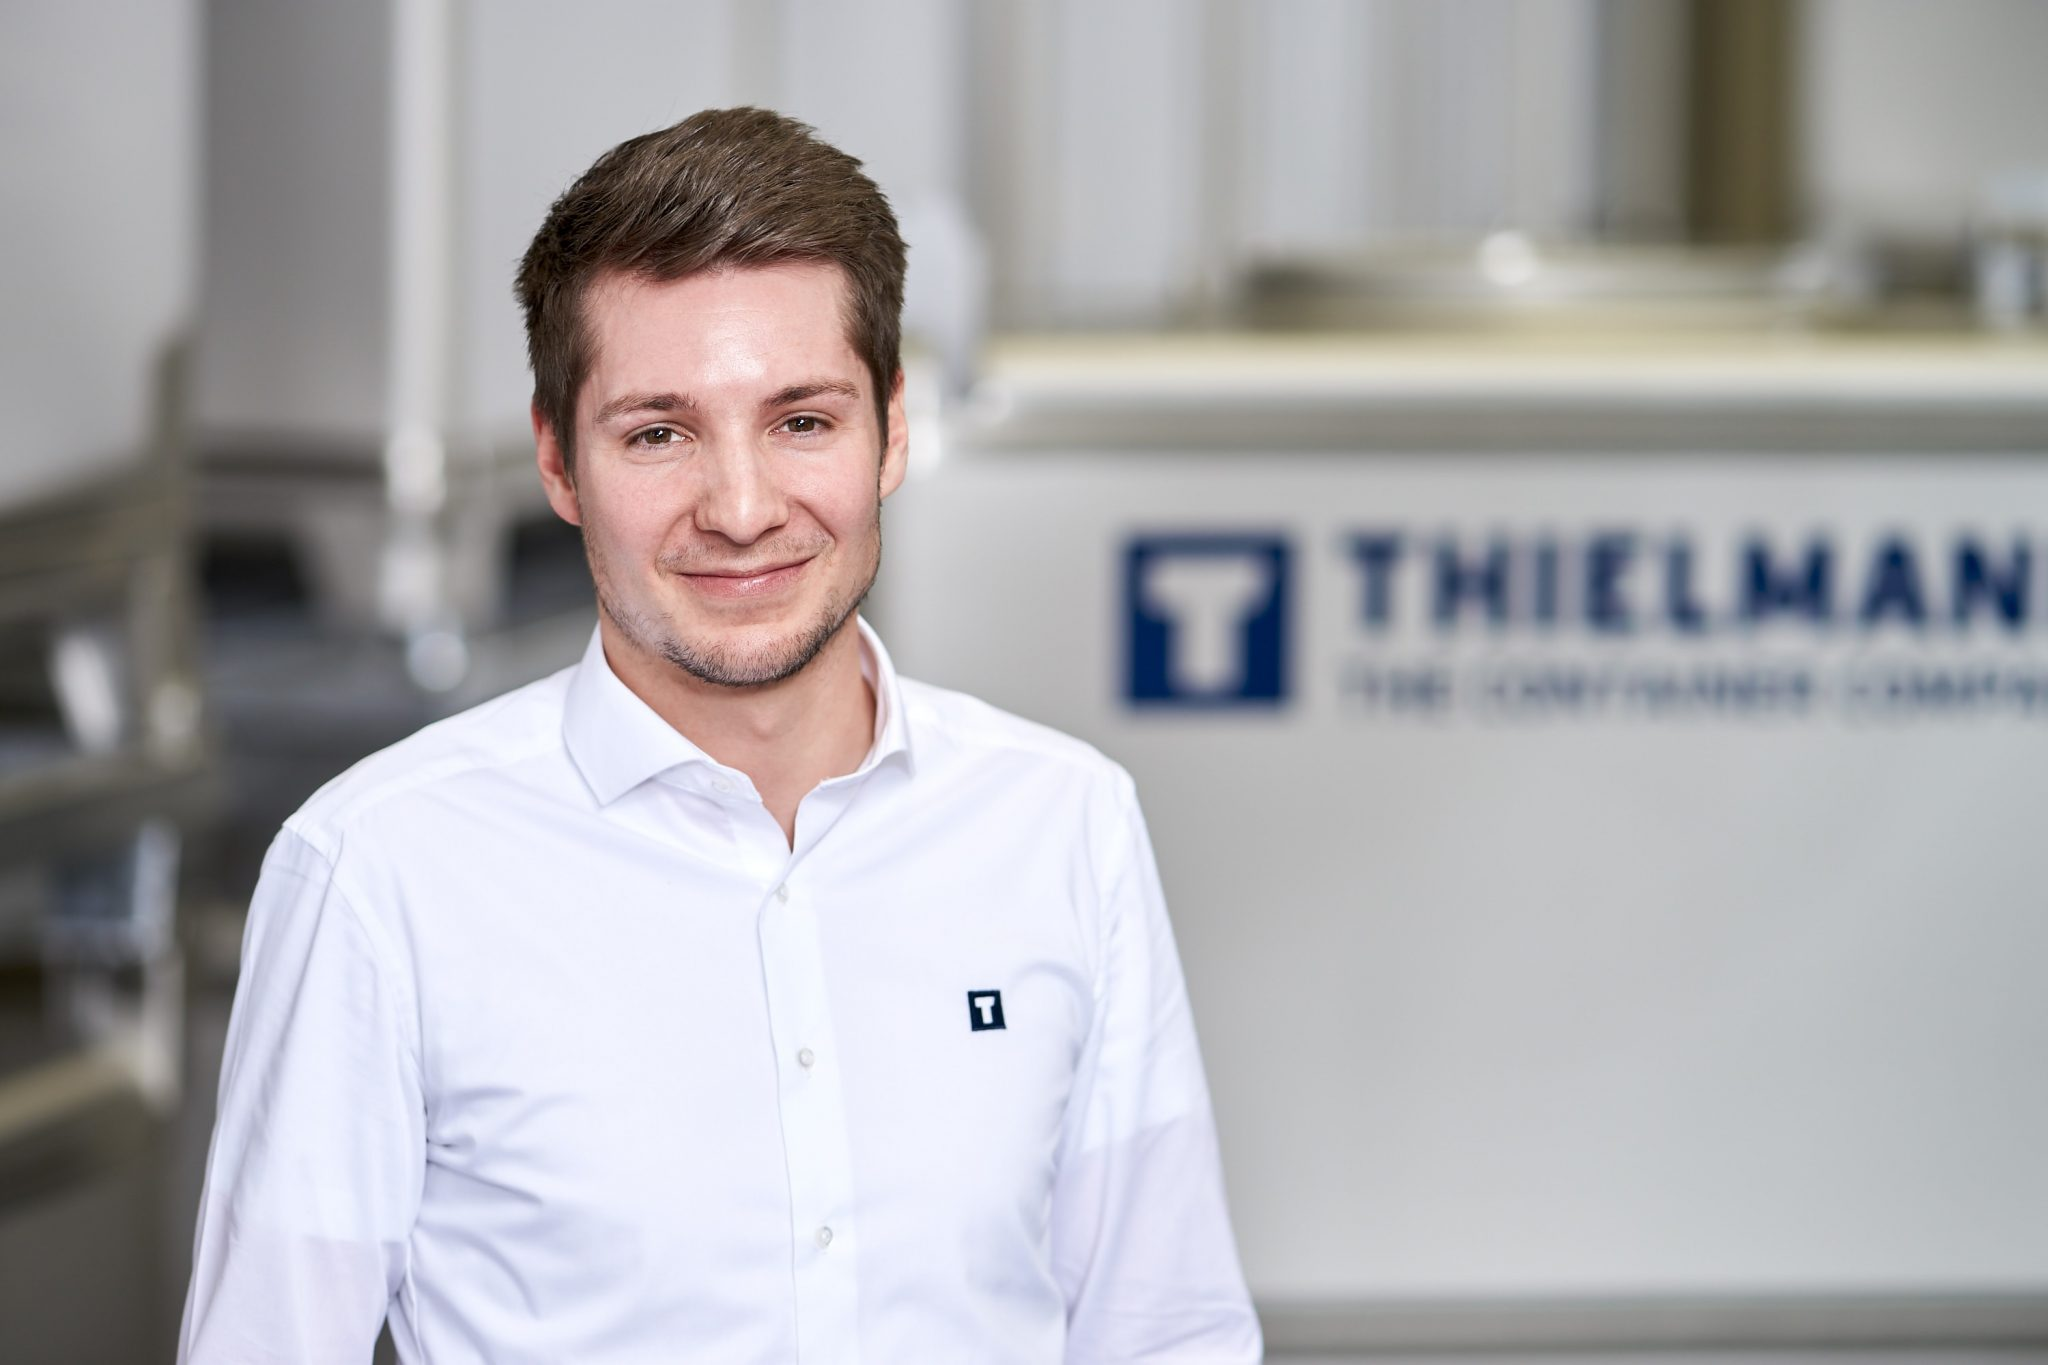 Thielmann - The Container Company by Dr. Daniel A. Opoku